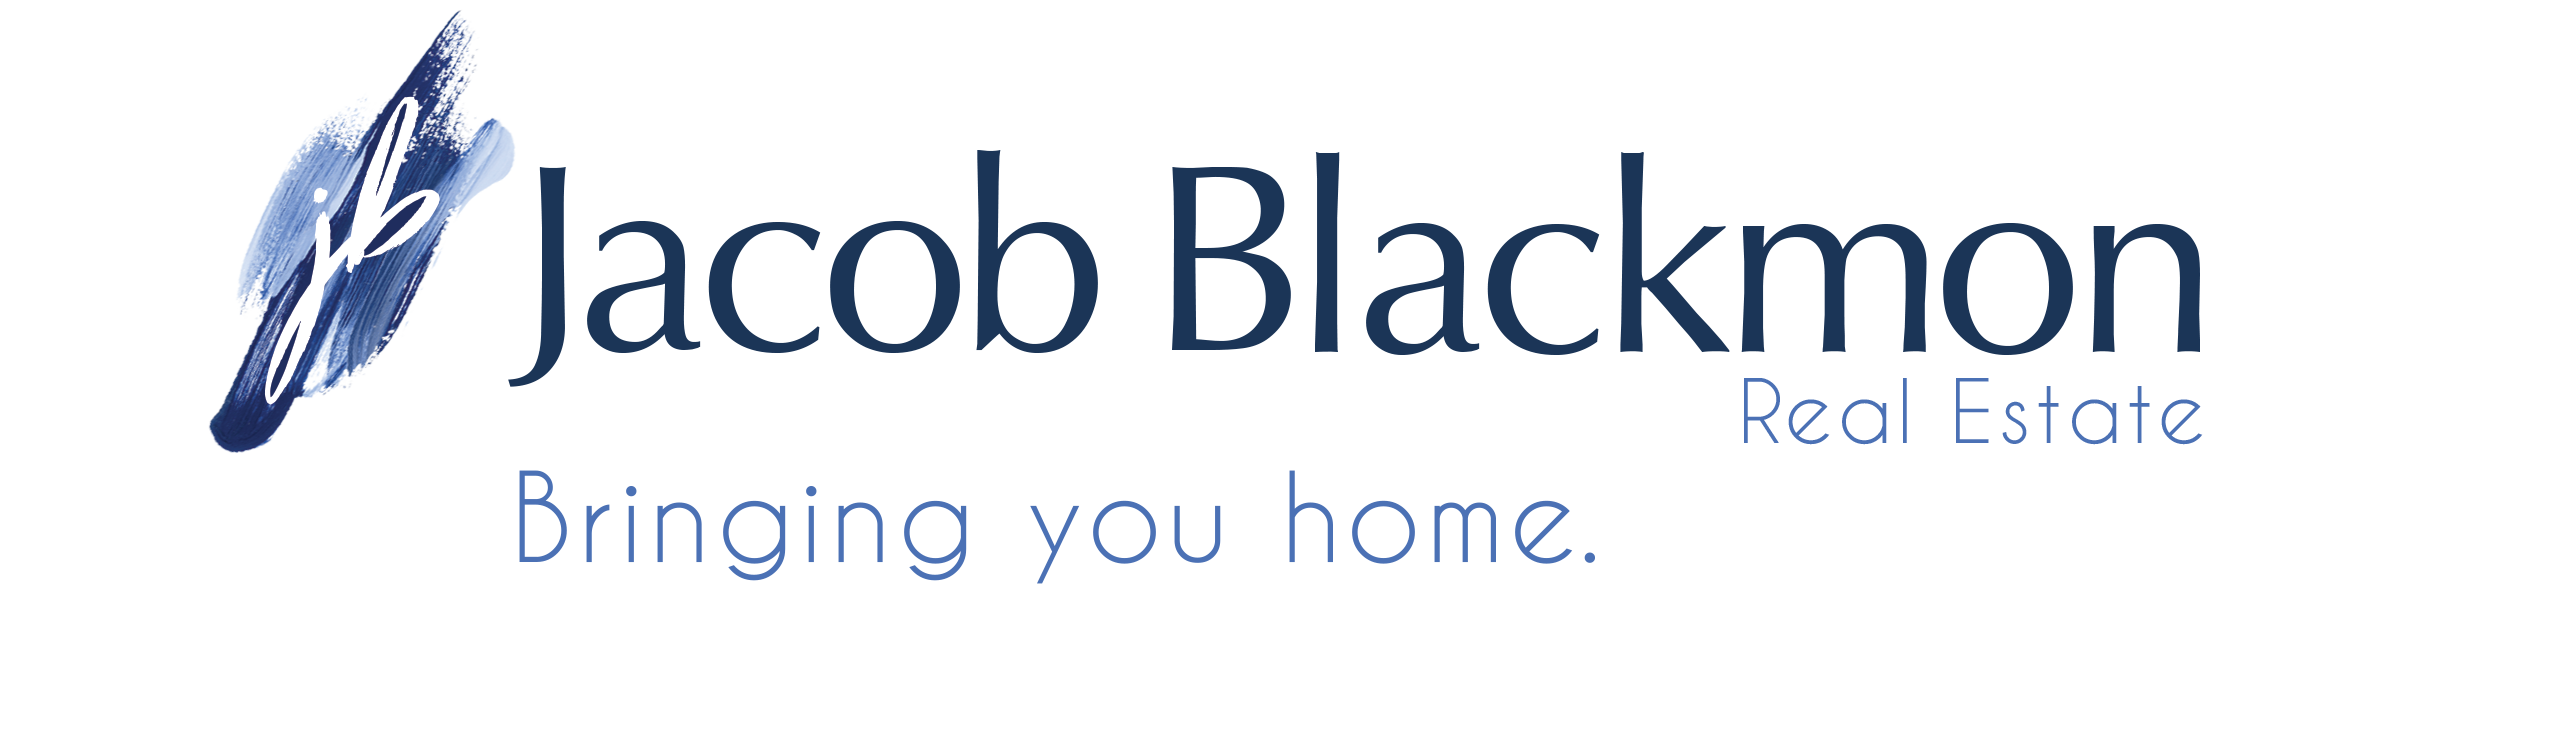 Jacob Blackmon Realty